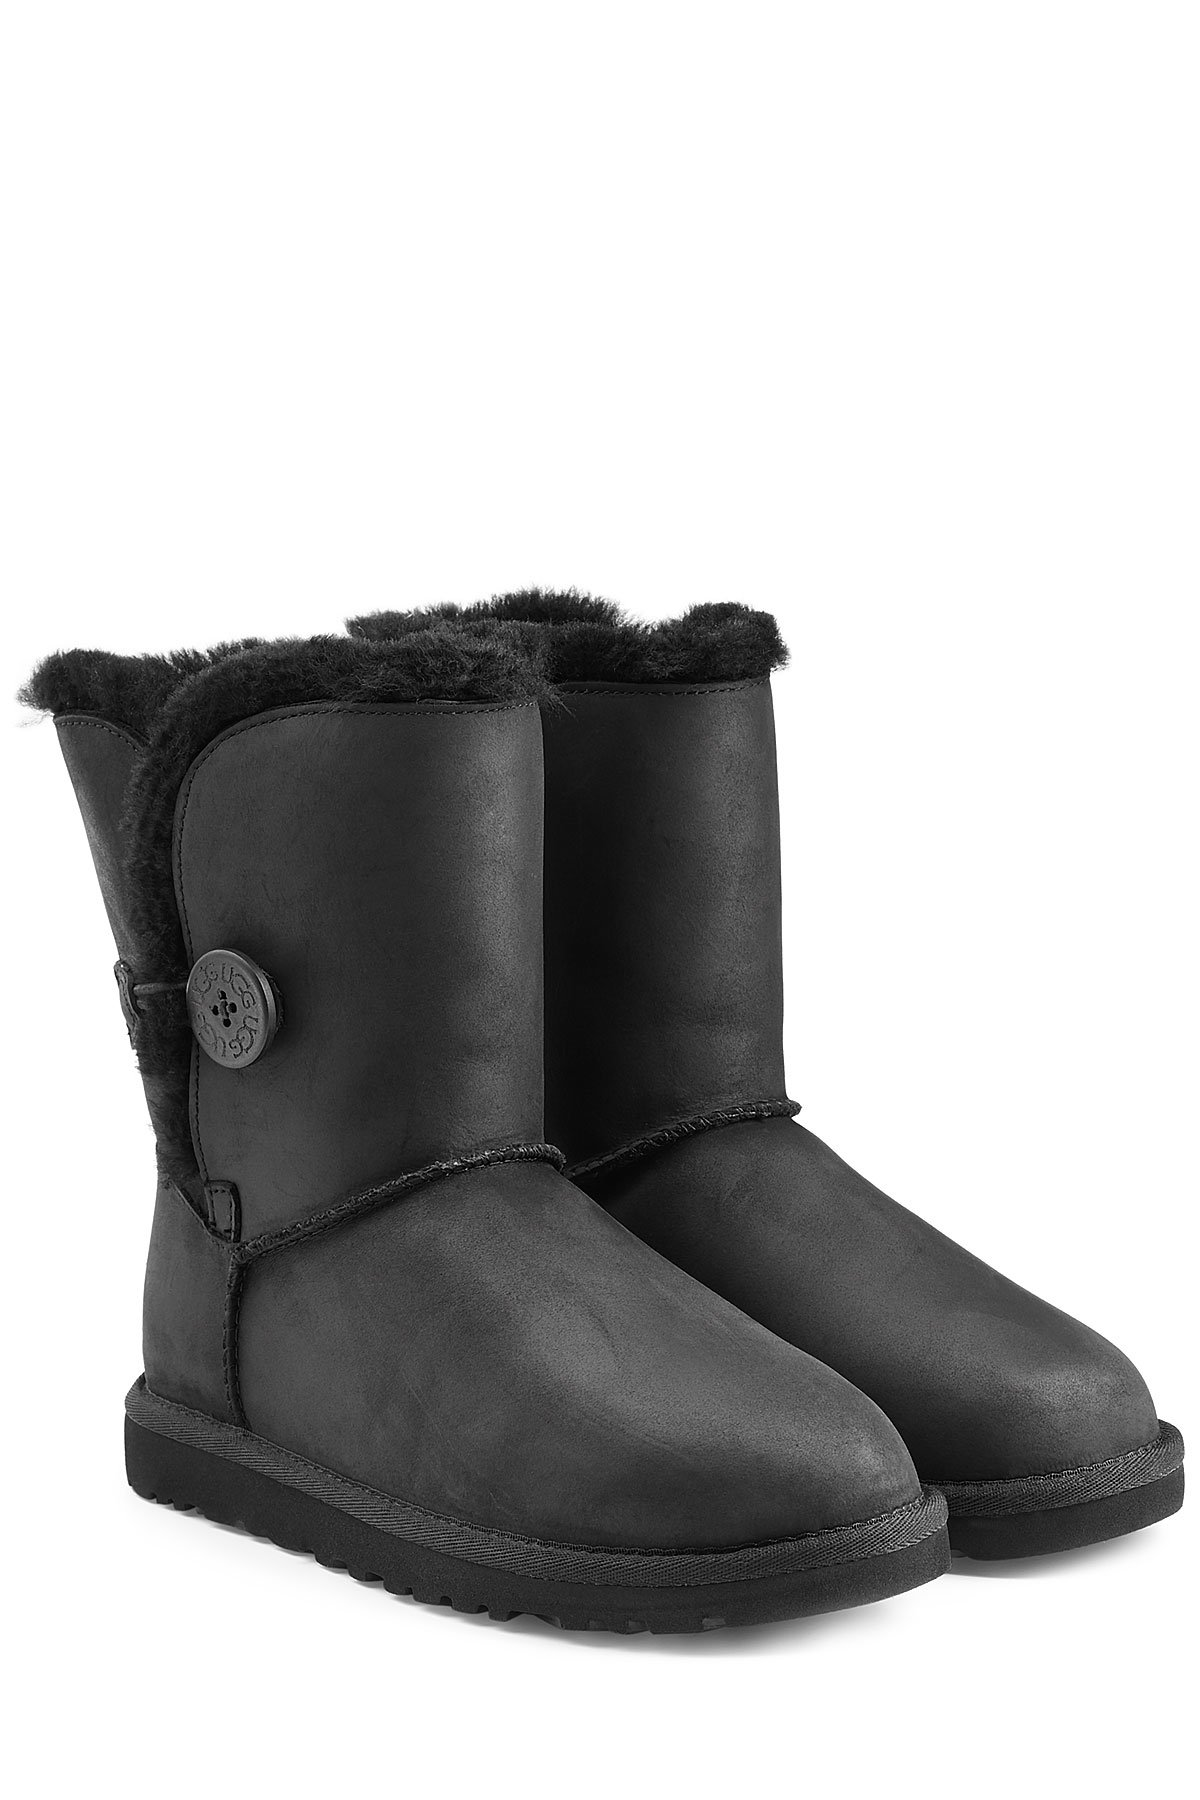 australian ugg boots bailey button